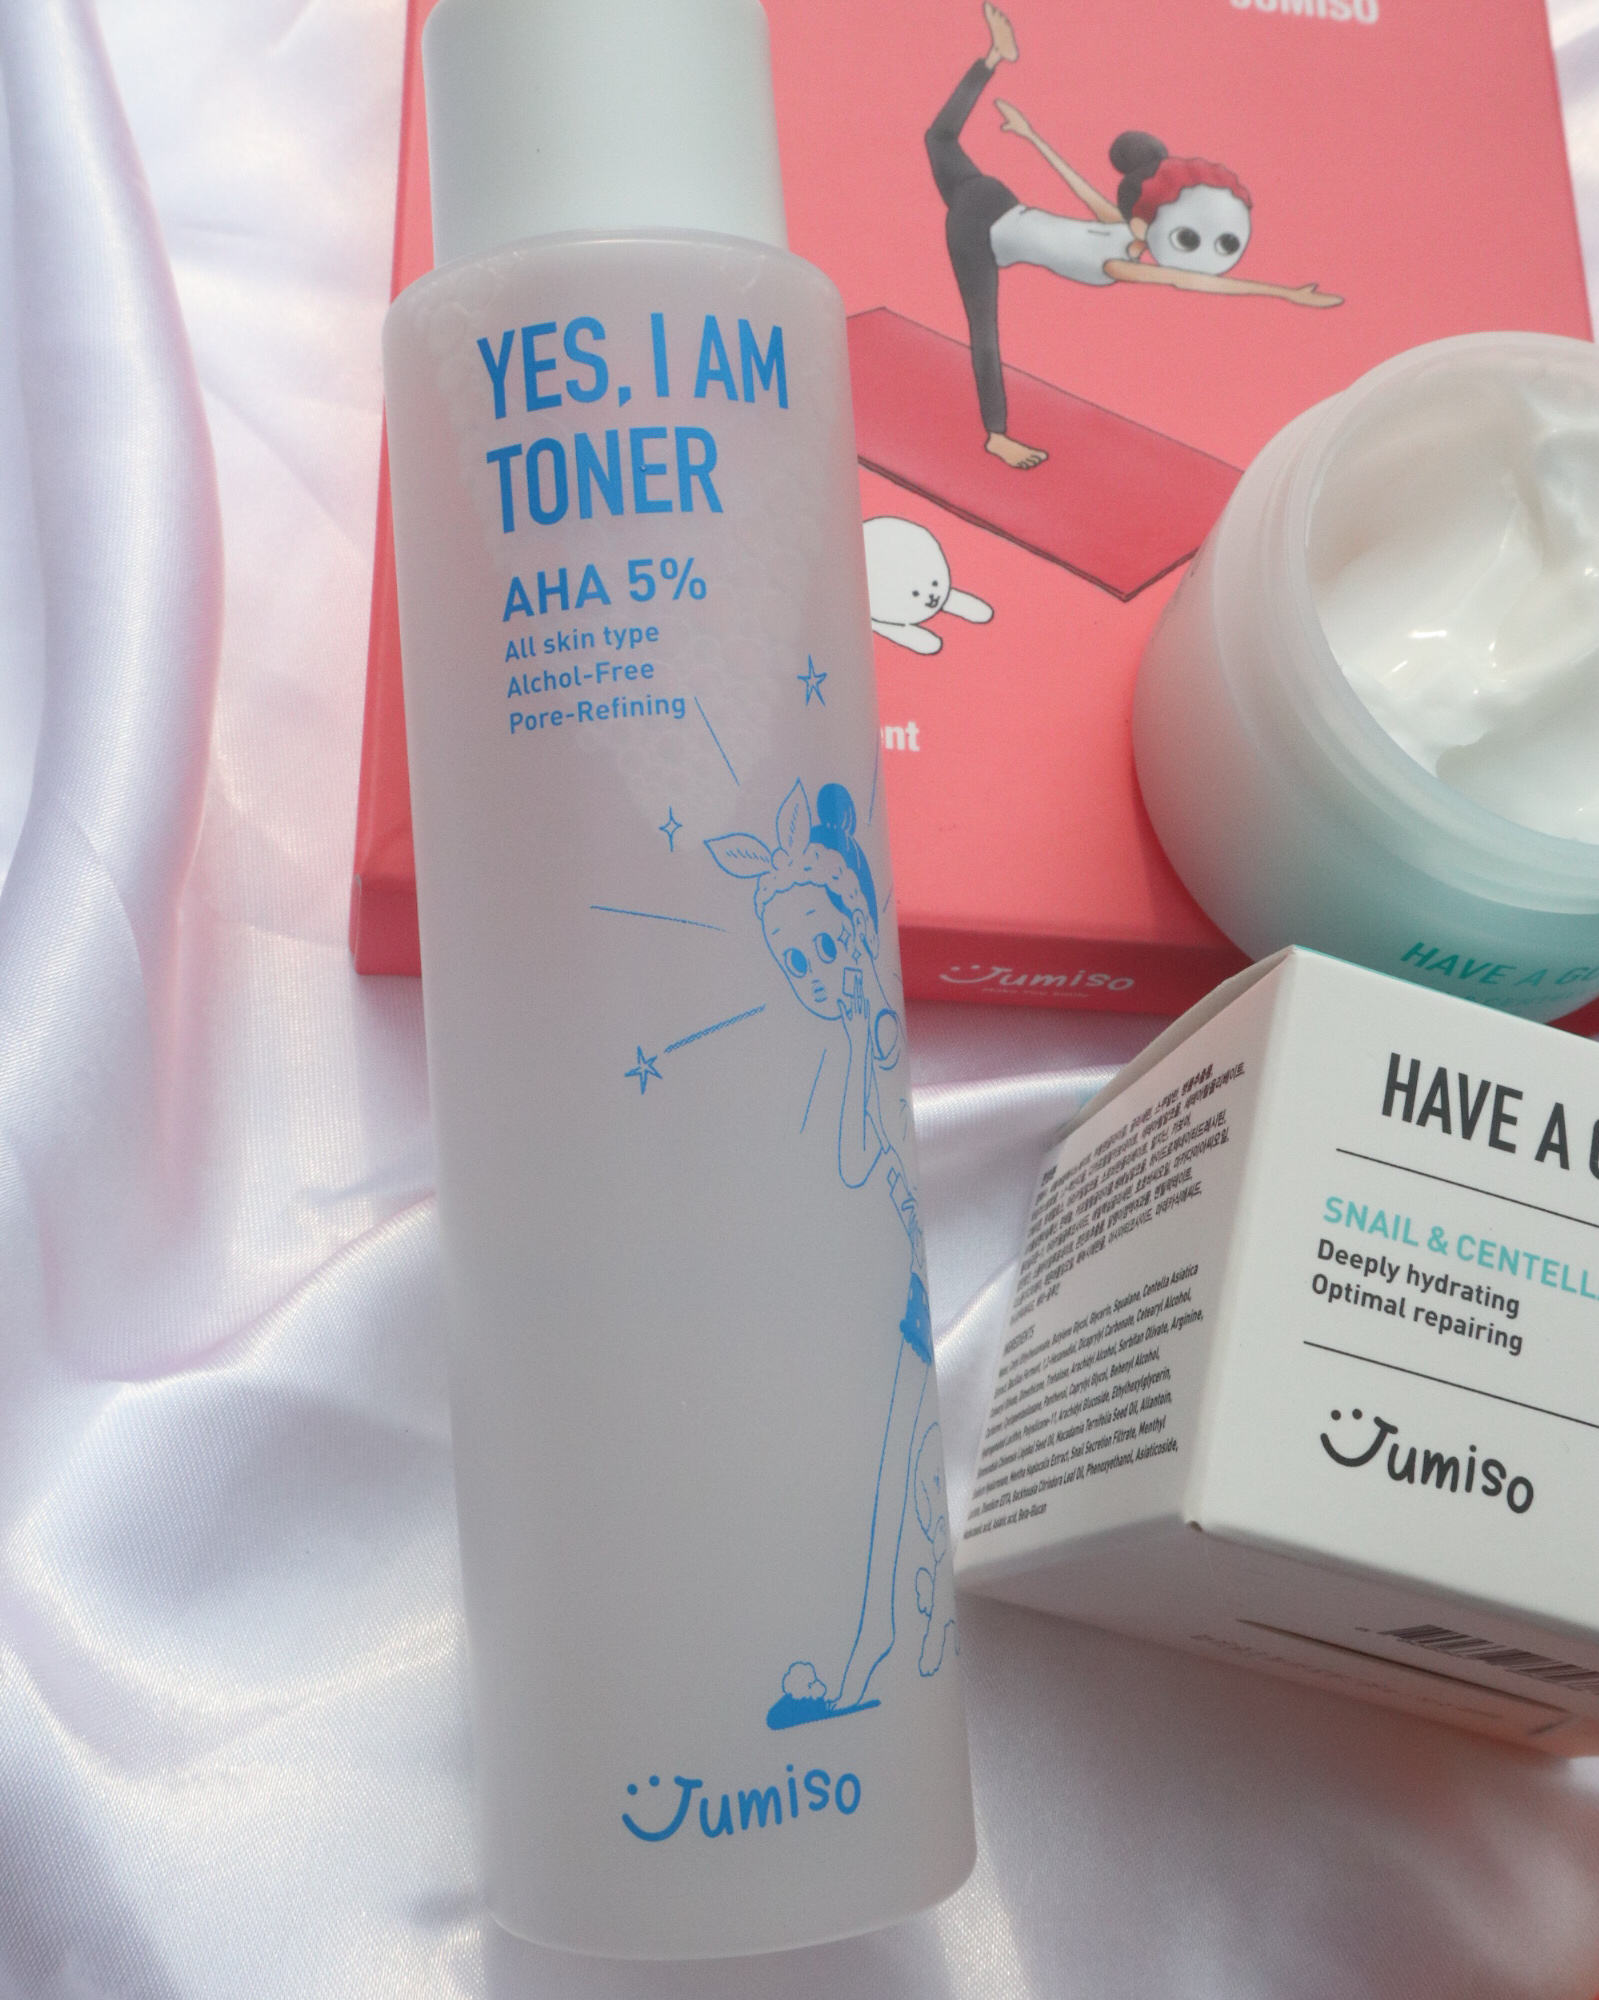 Jumiso Yes I Am Toner AHA 5% Review